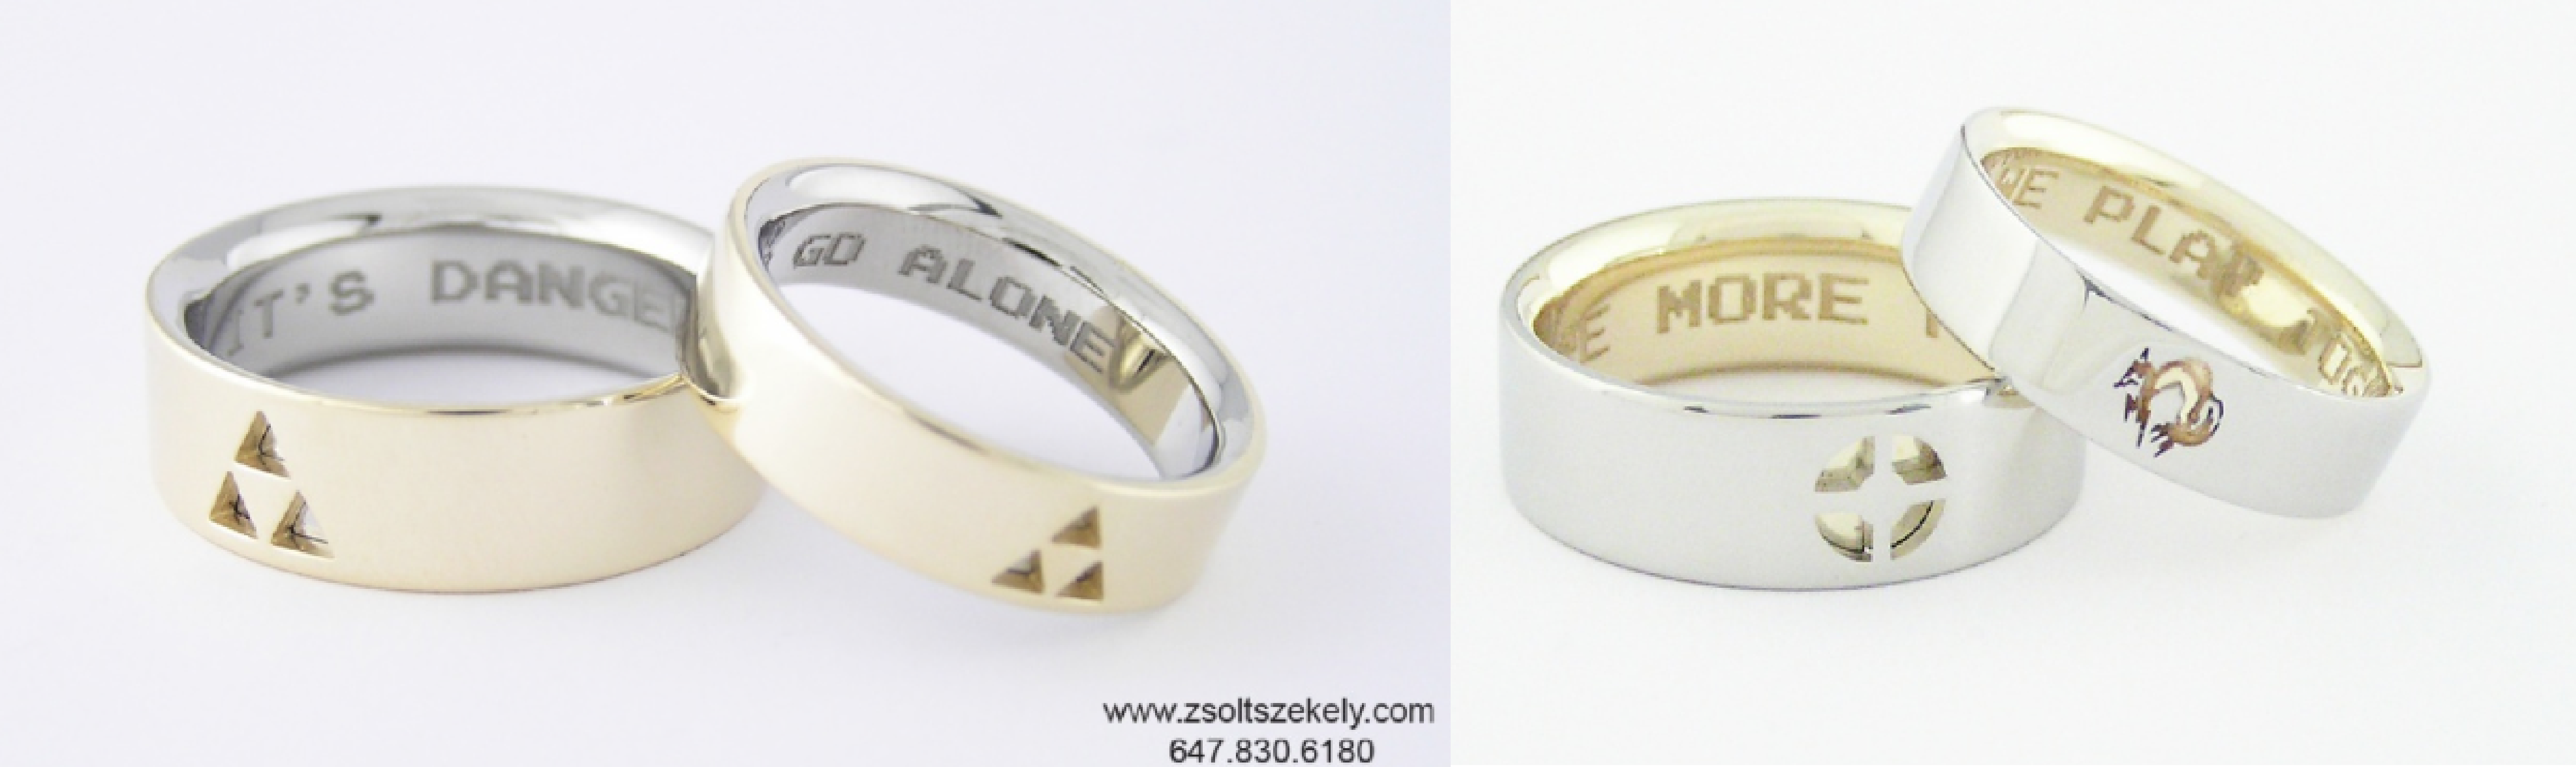 crazy weird geeky ring rings and wedding nerdy of togeteher com bolt nut bands with mens patsveg